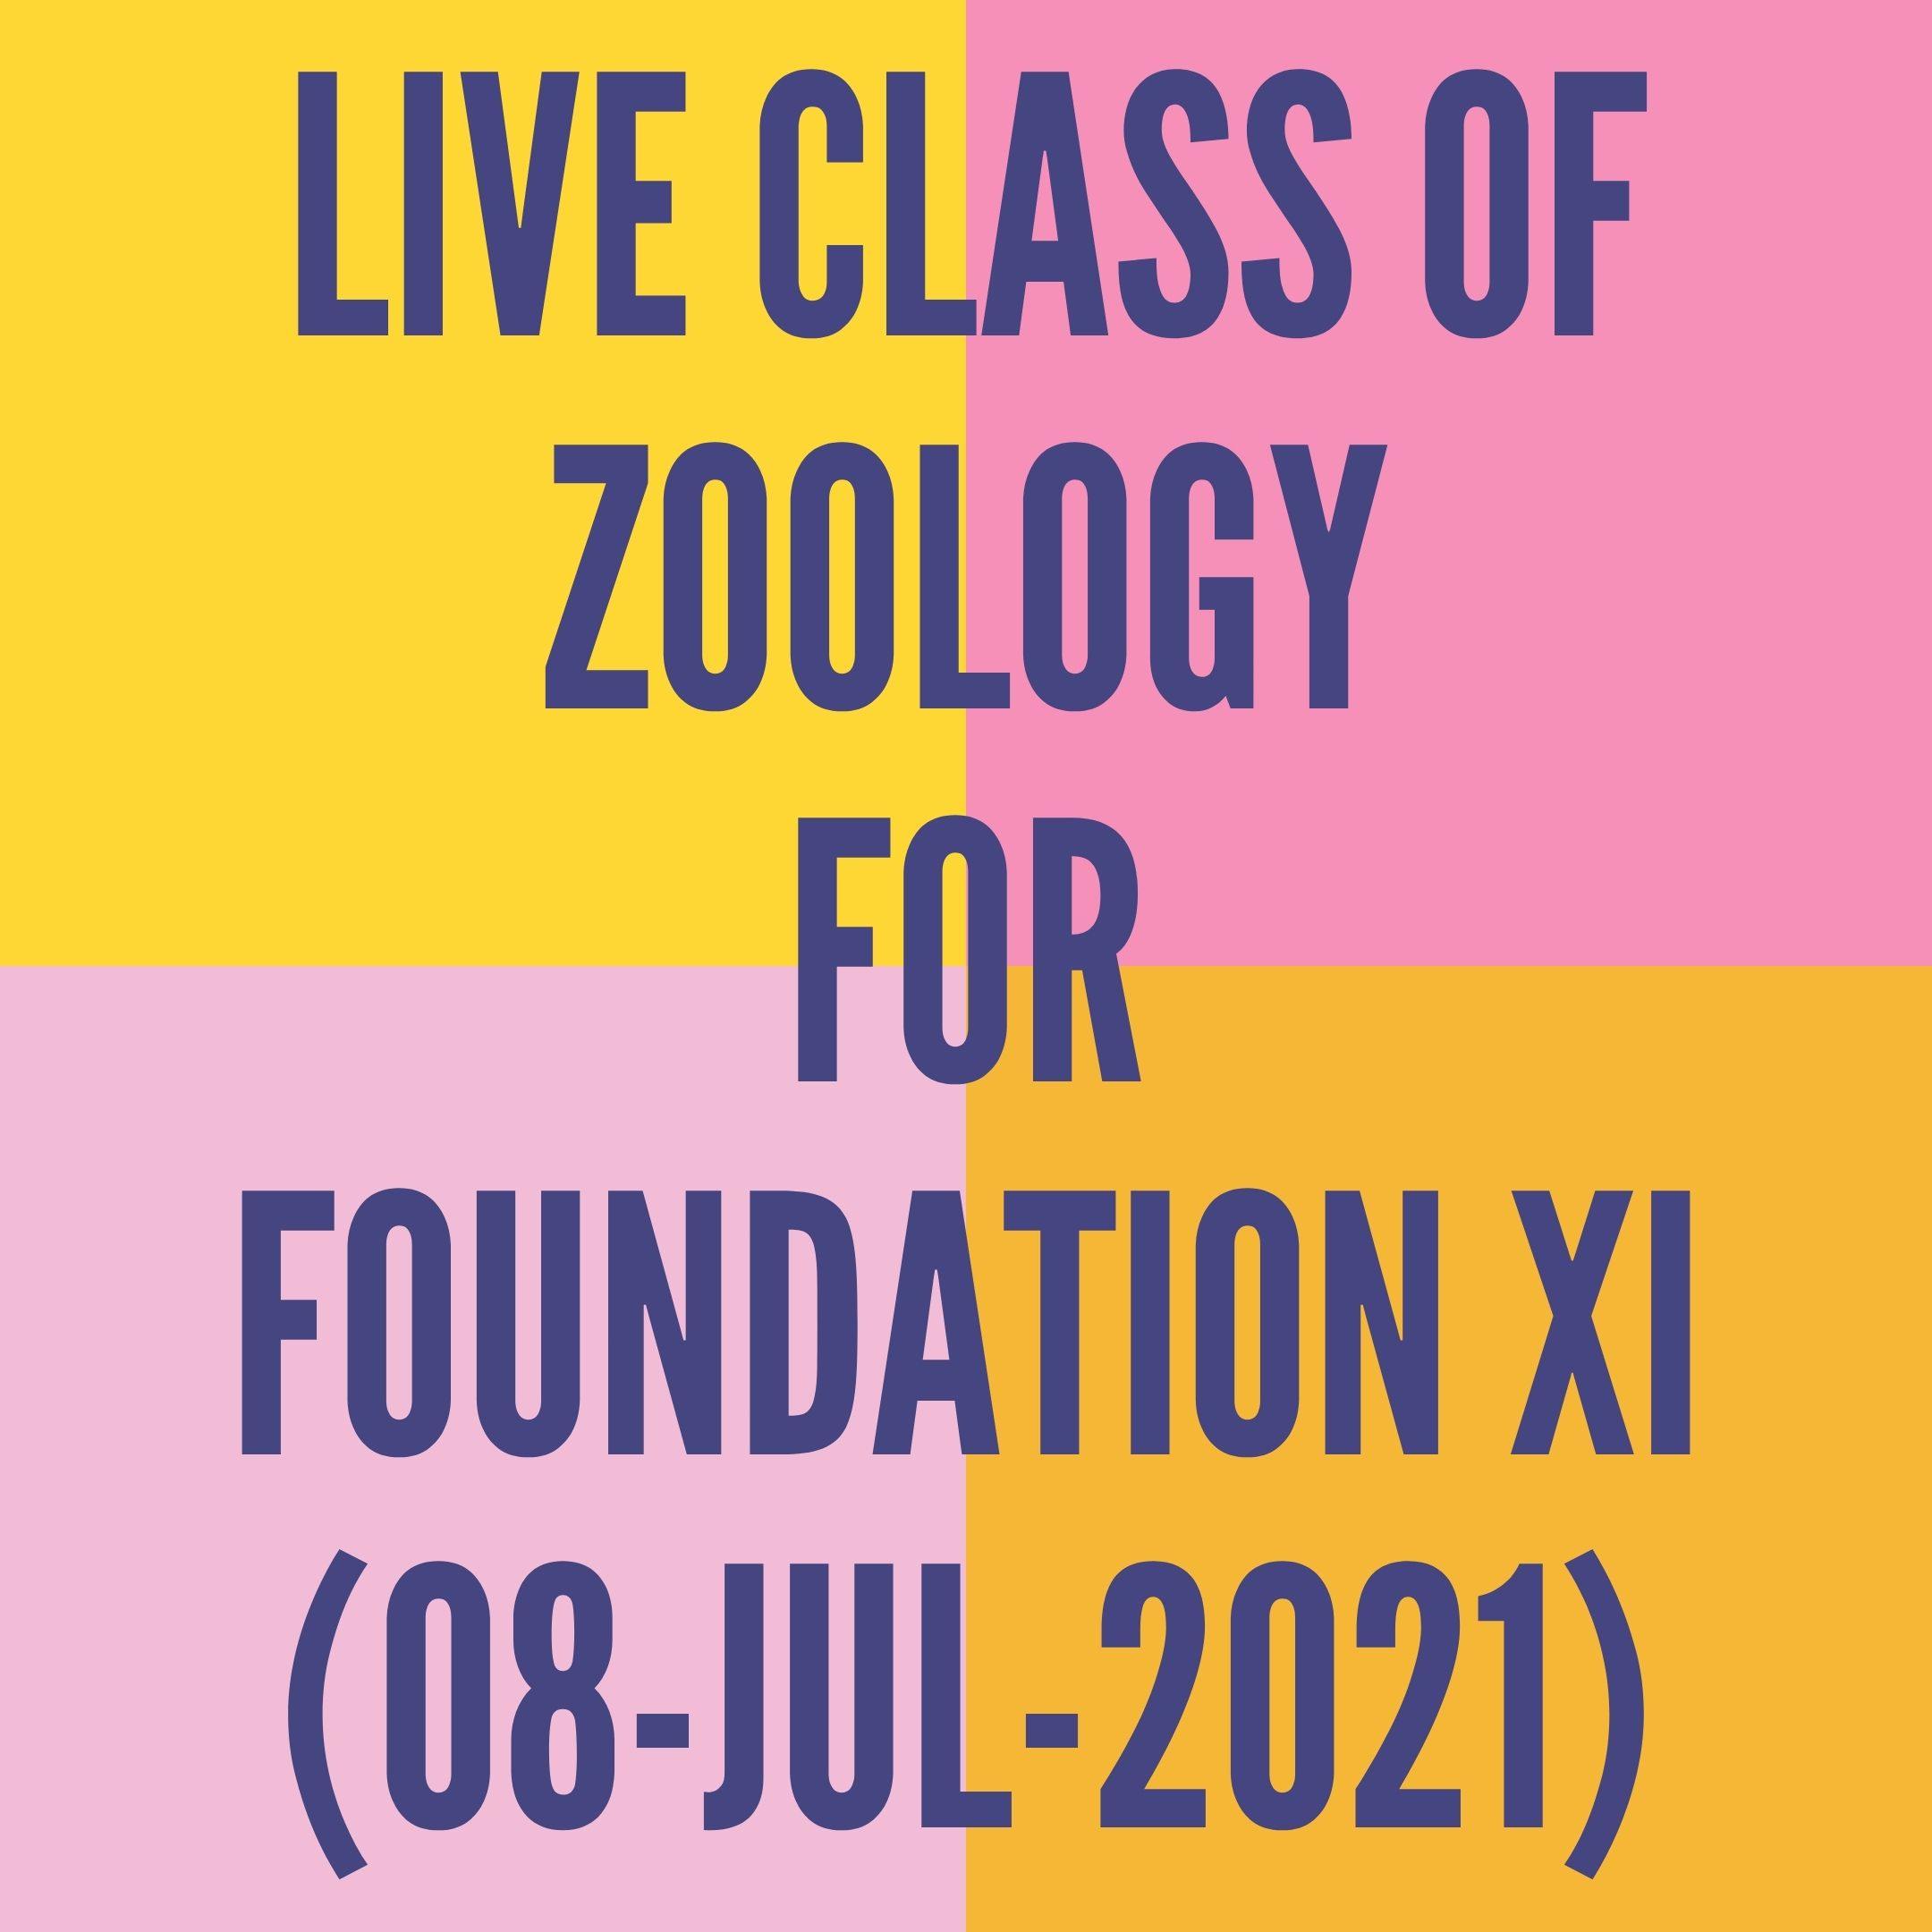 LIVE CLASS OF ZOOLOGY FOR FOUNDATION XI (08-JUL-2021) DIGESTIVE SYSTEM